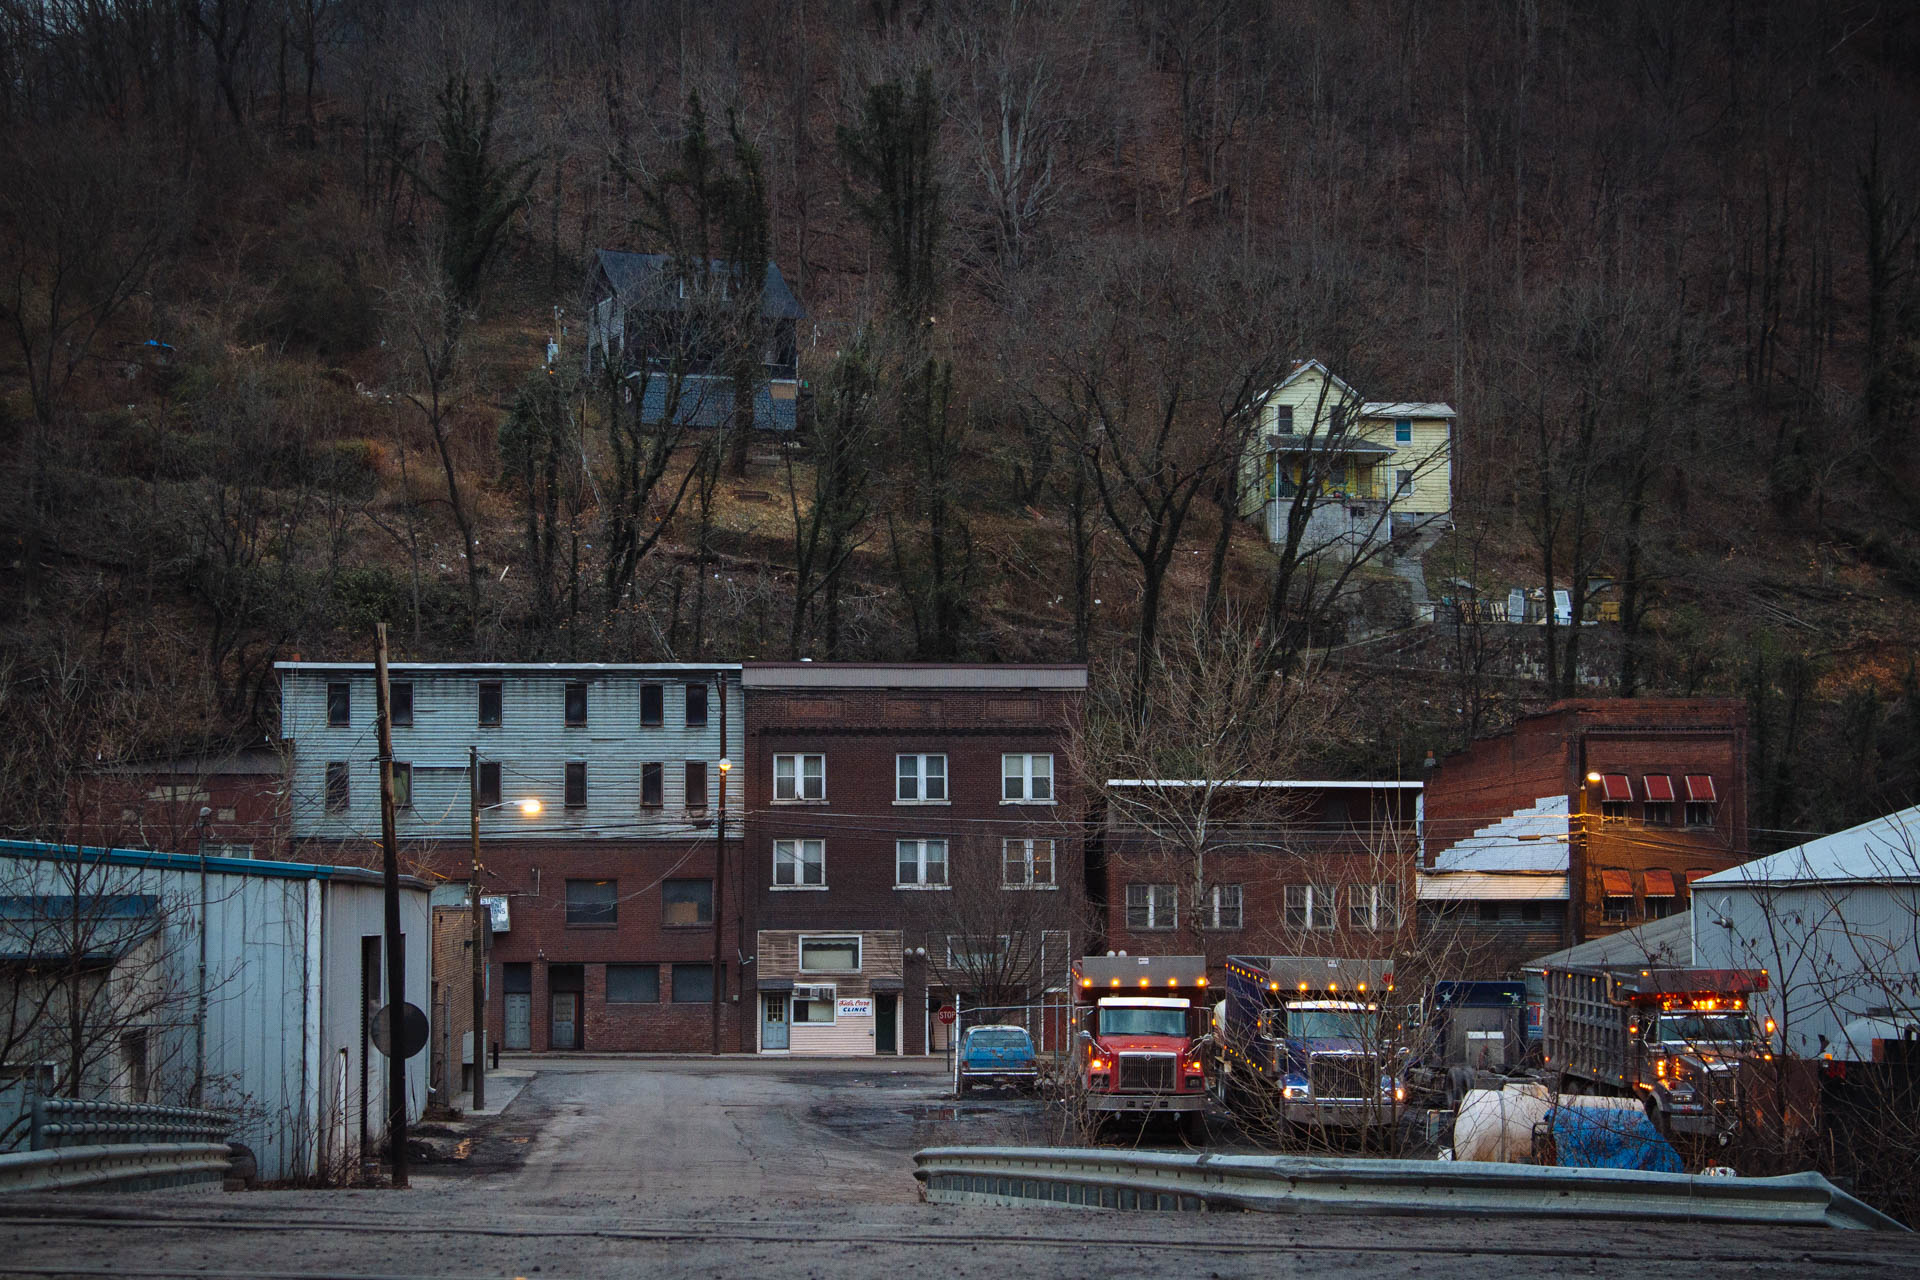 coal-trucks-at-dawn-downtown-keystone-wv-1269.JPG